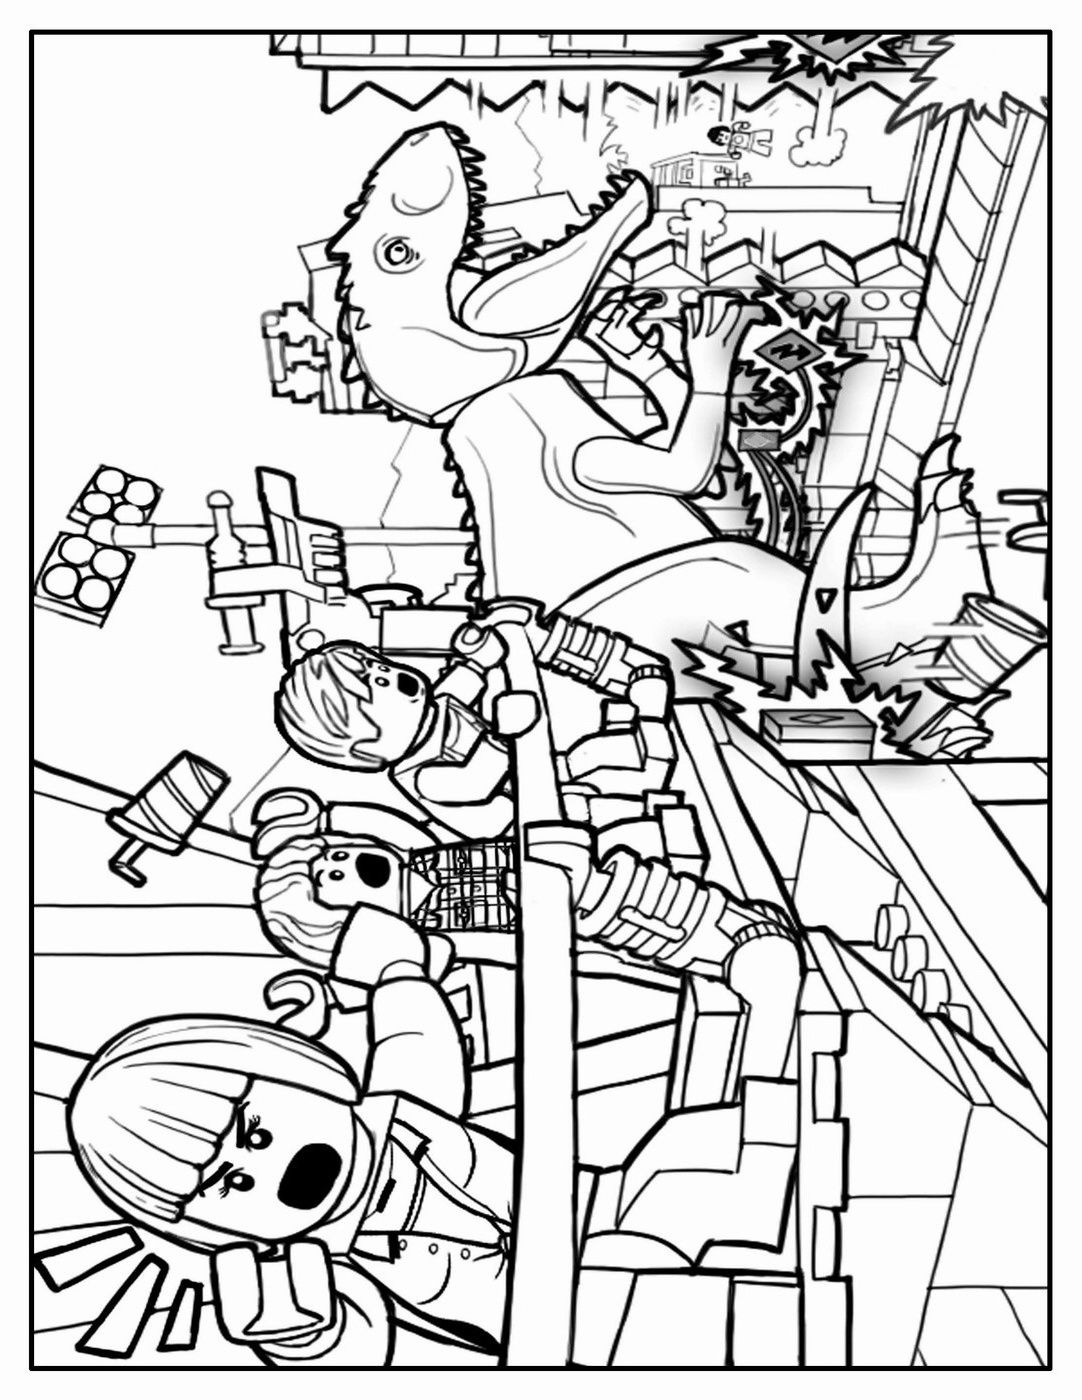 Lego Jurassic World Coloring Pages Coloring Pages  Coloriage